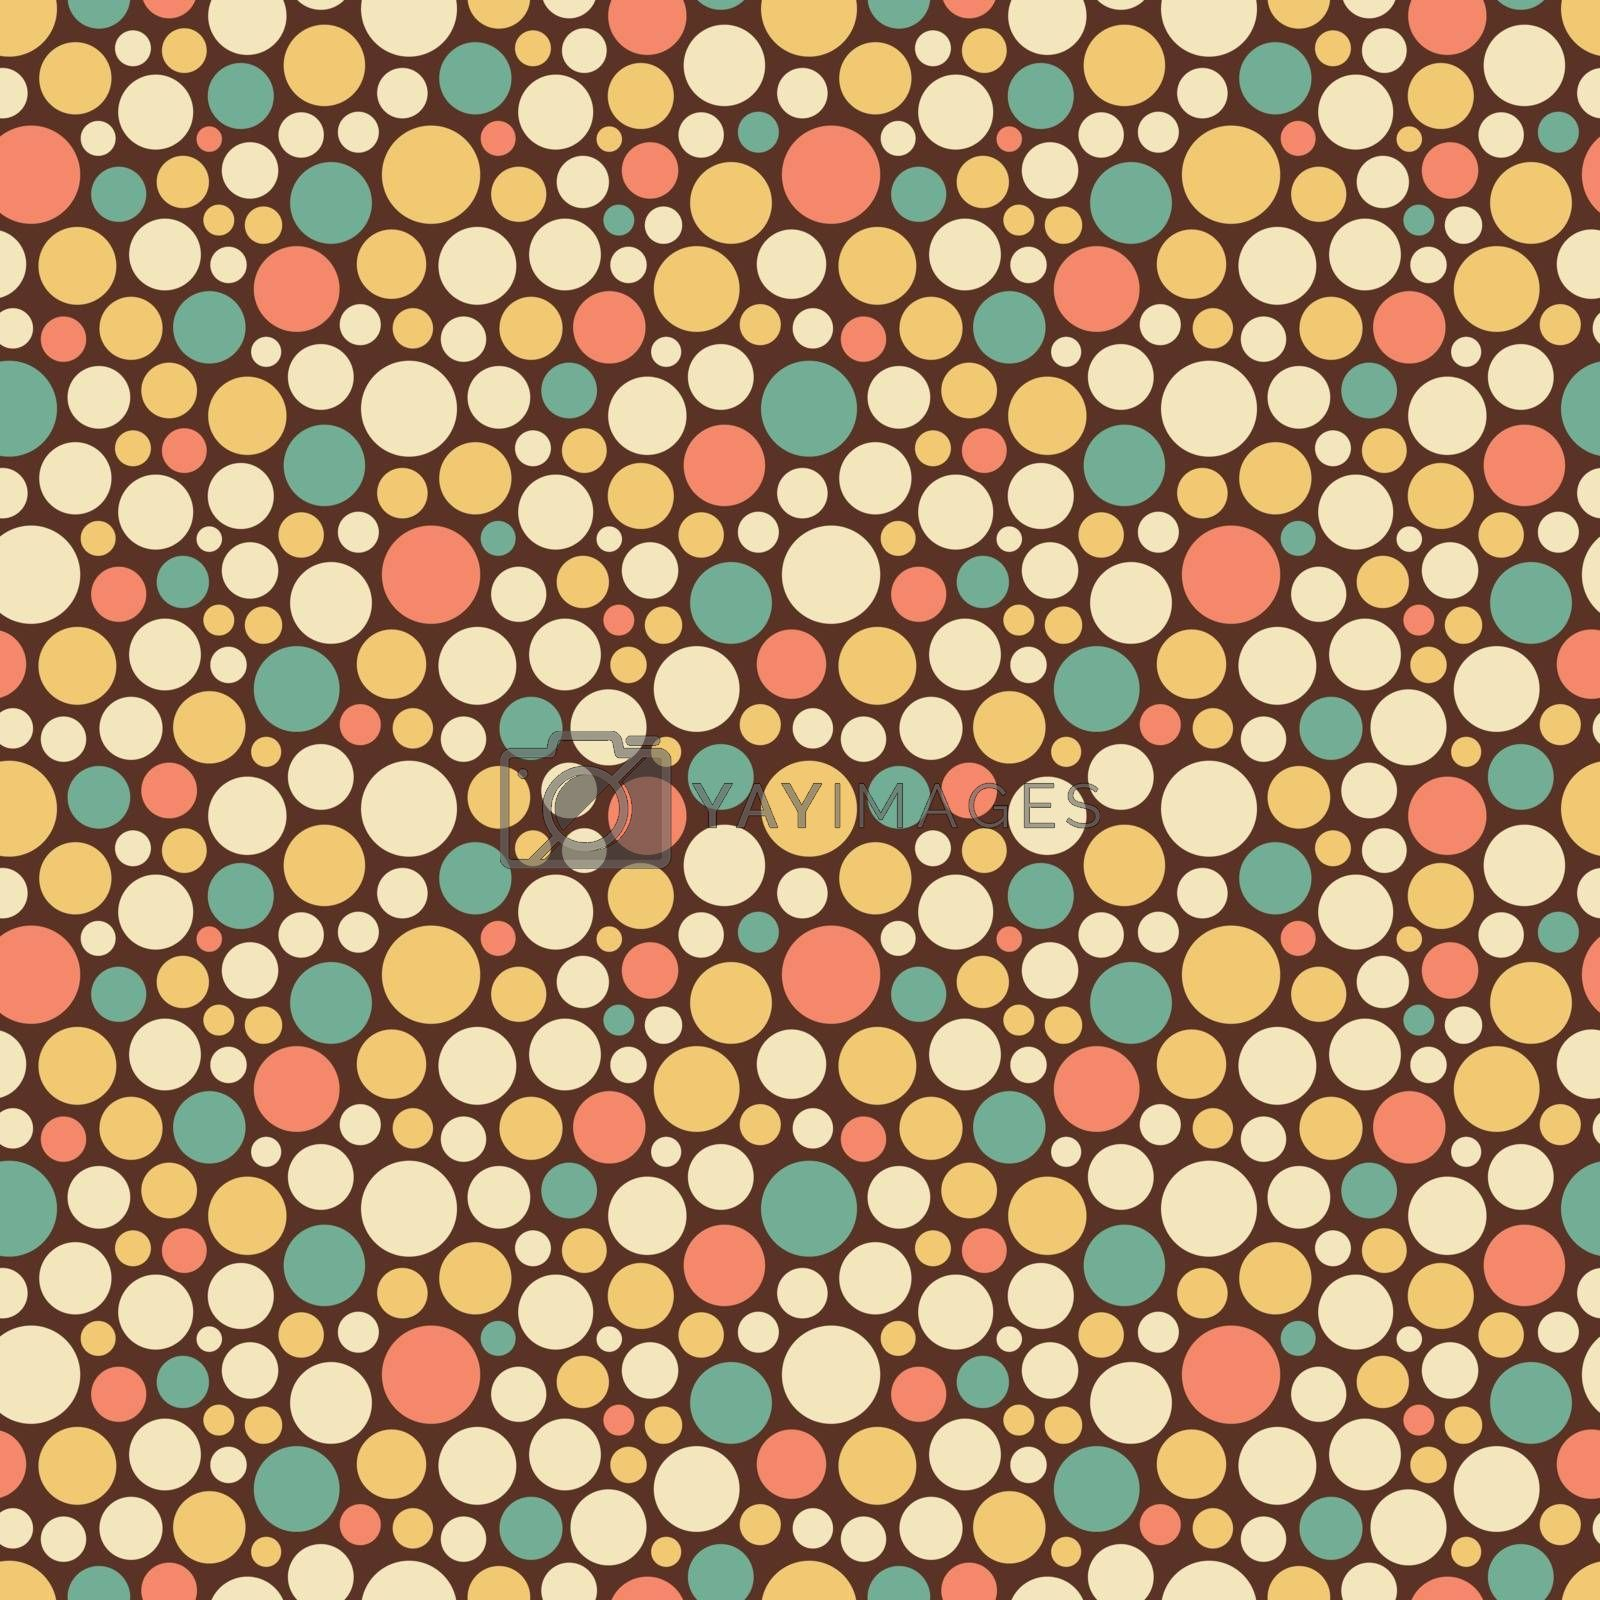 Seamless festive background from circles.  Vector Illustration. Can be used for wallpaper, web page background, web banners.